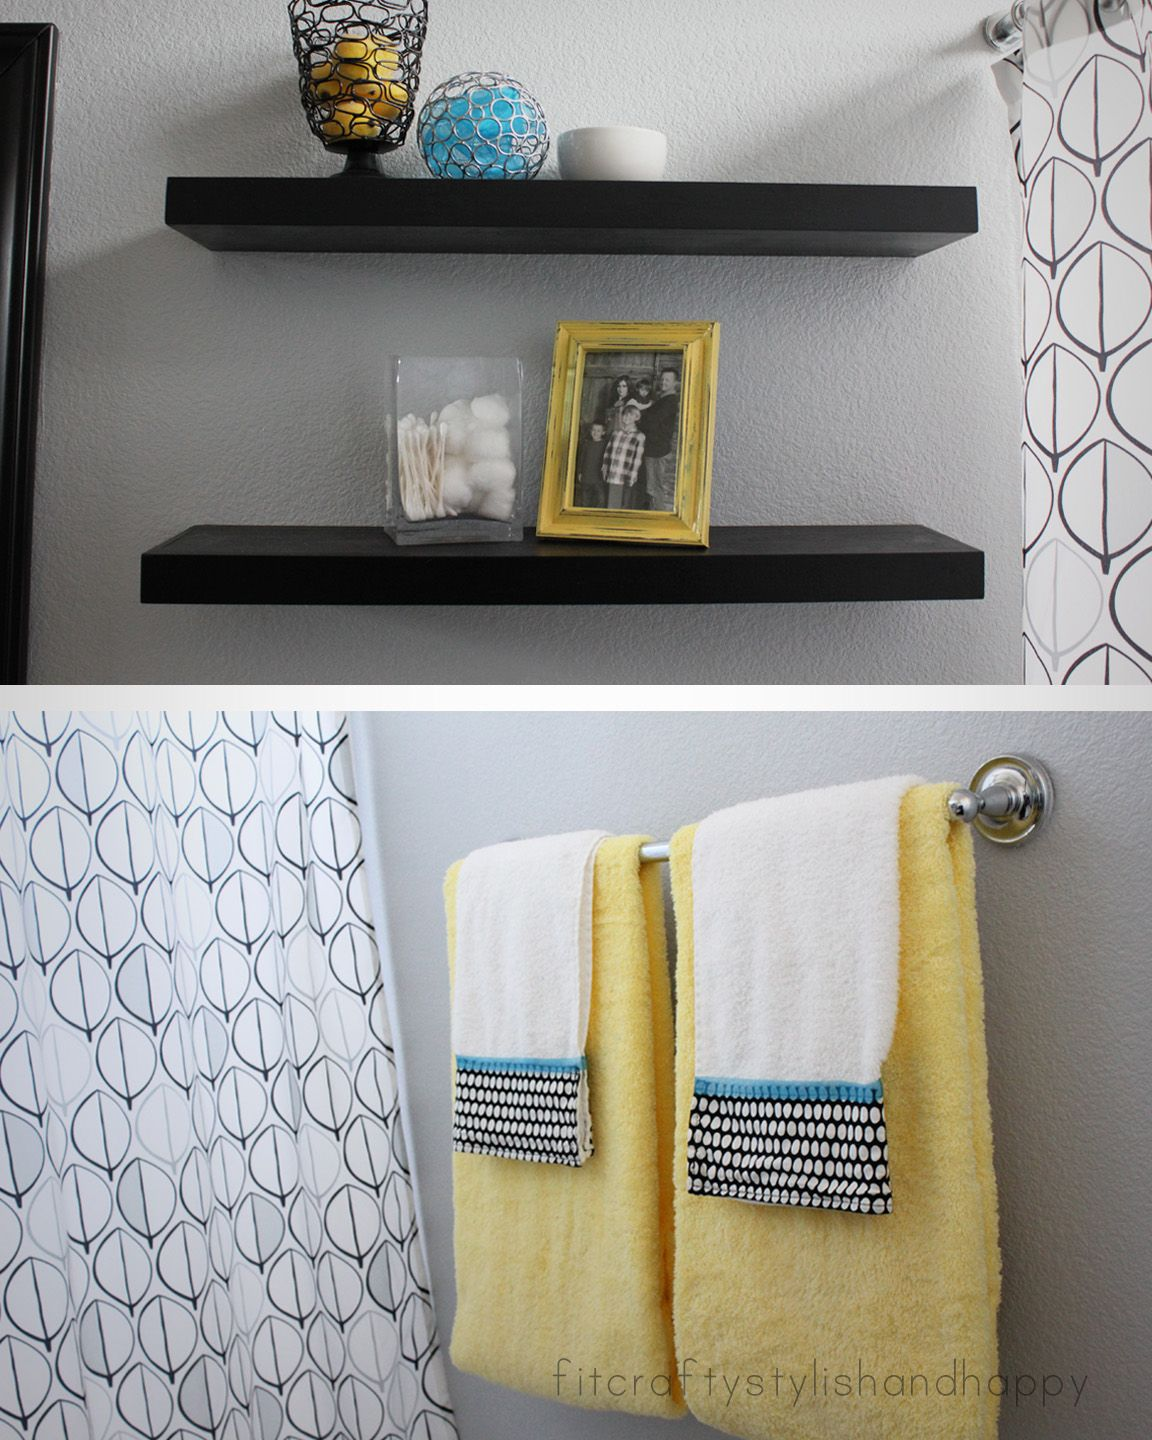 Fit Crafty Stylish And Happy Guest Bathroom Makeover Love The - Yellow bath towels for small bathroom ideas